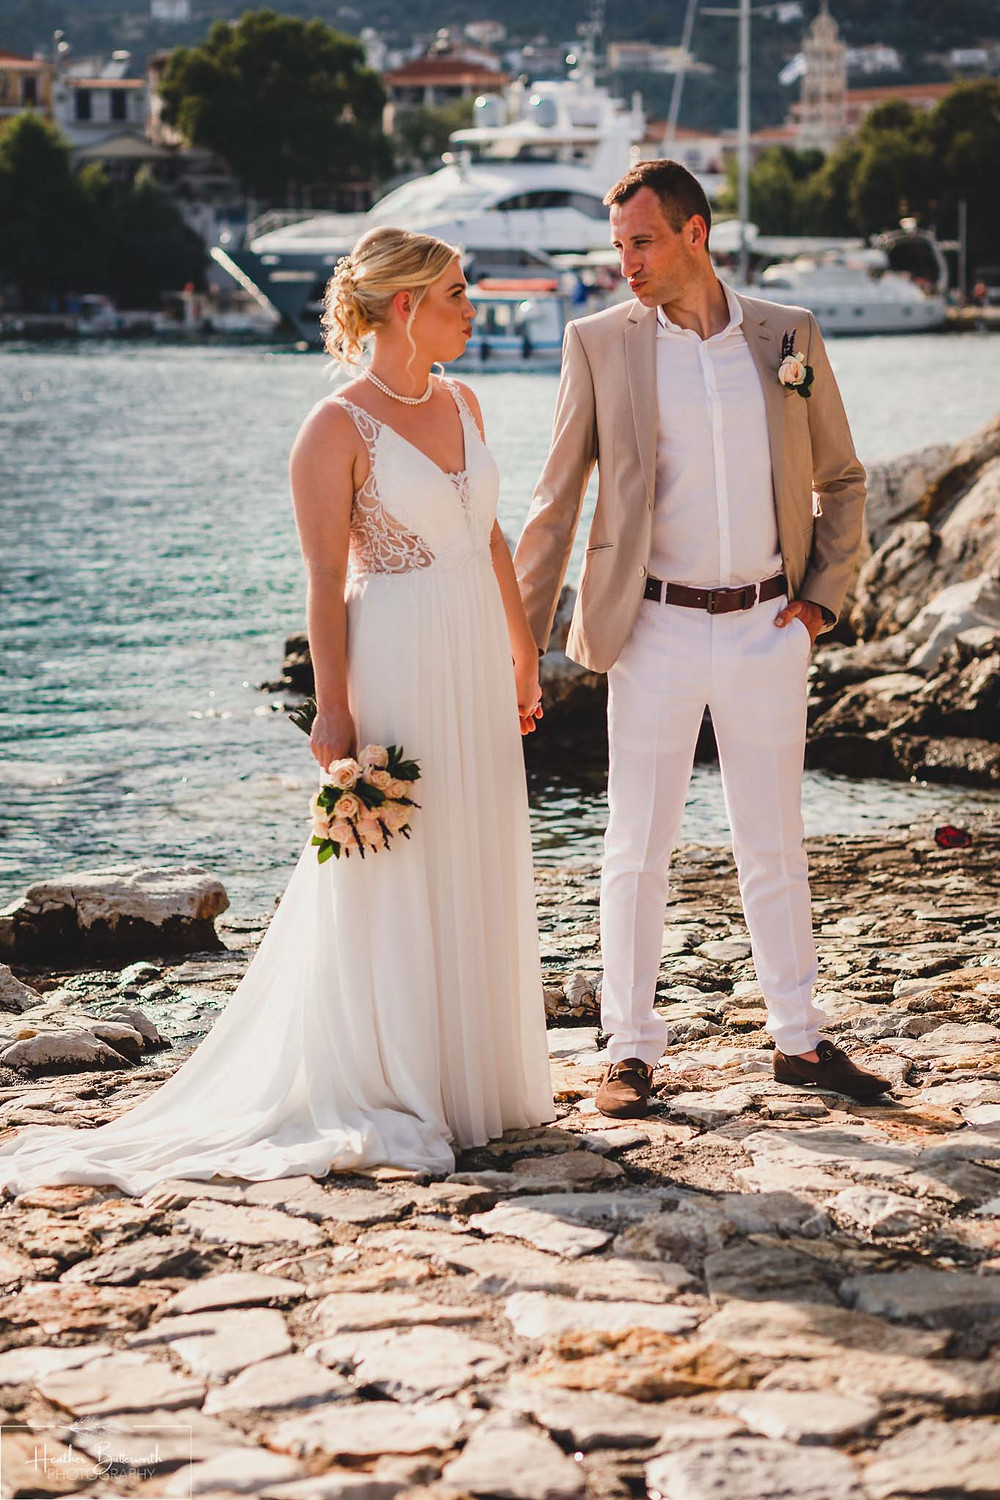 Bride and groom pouting on the beach together after their wedding at The Bourtzi in Skiathos Town, Greece